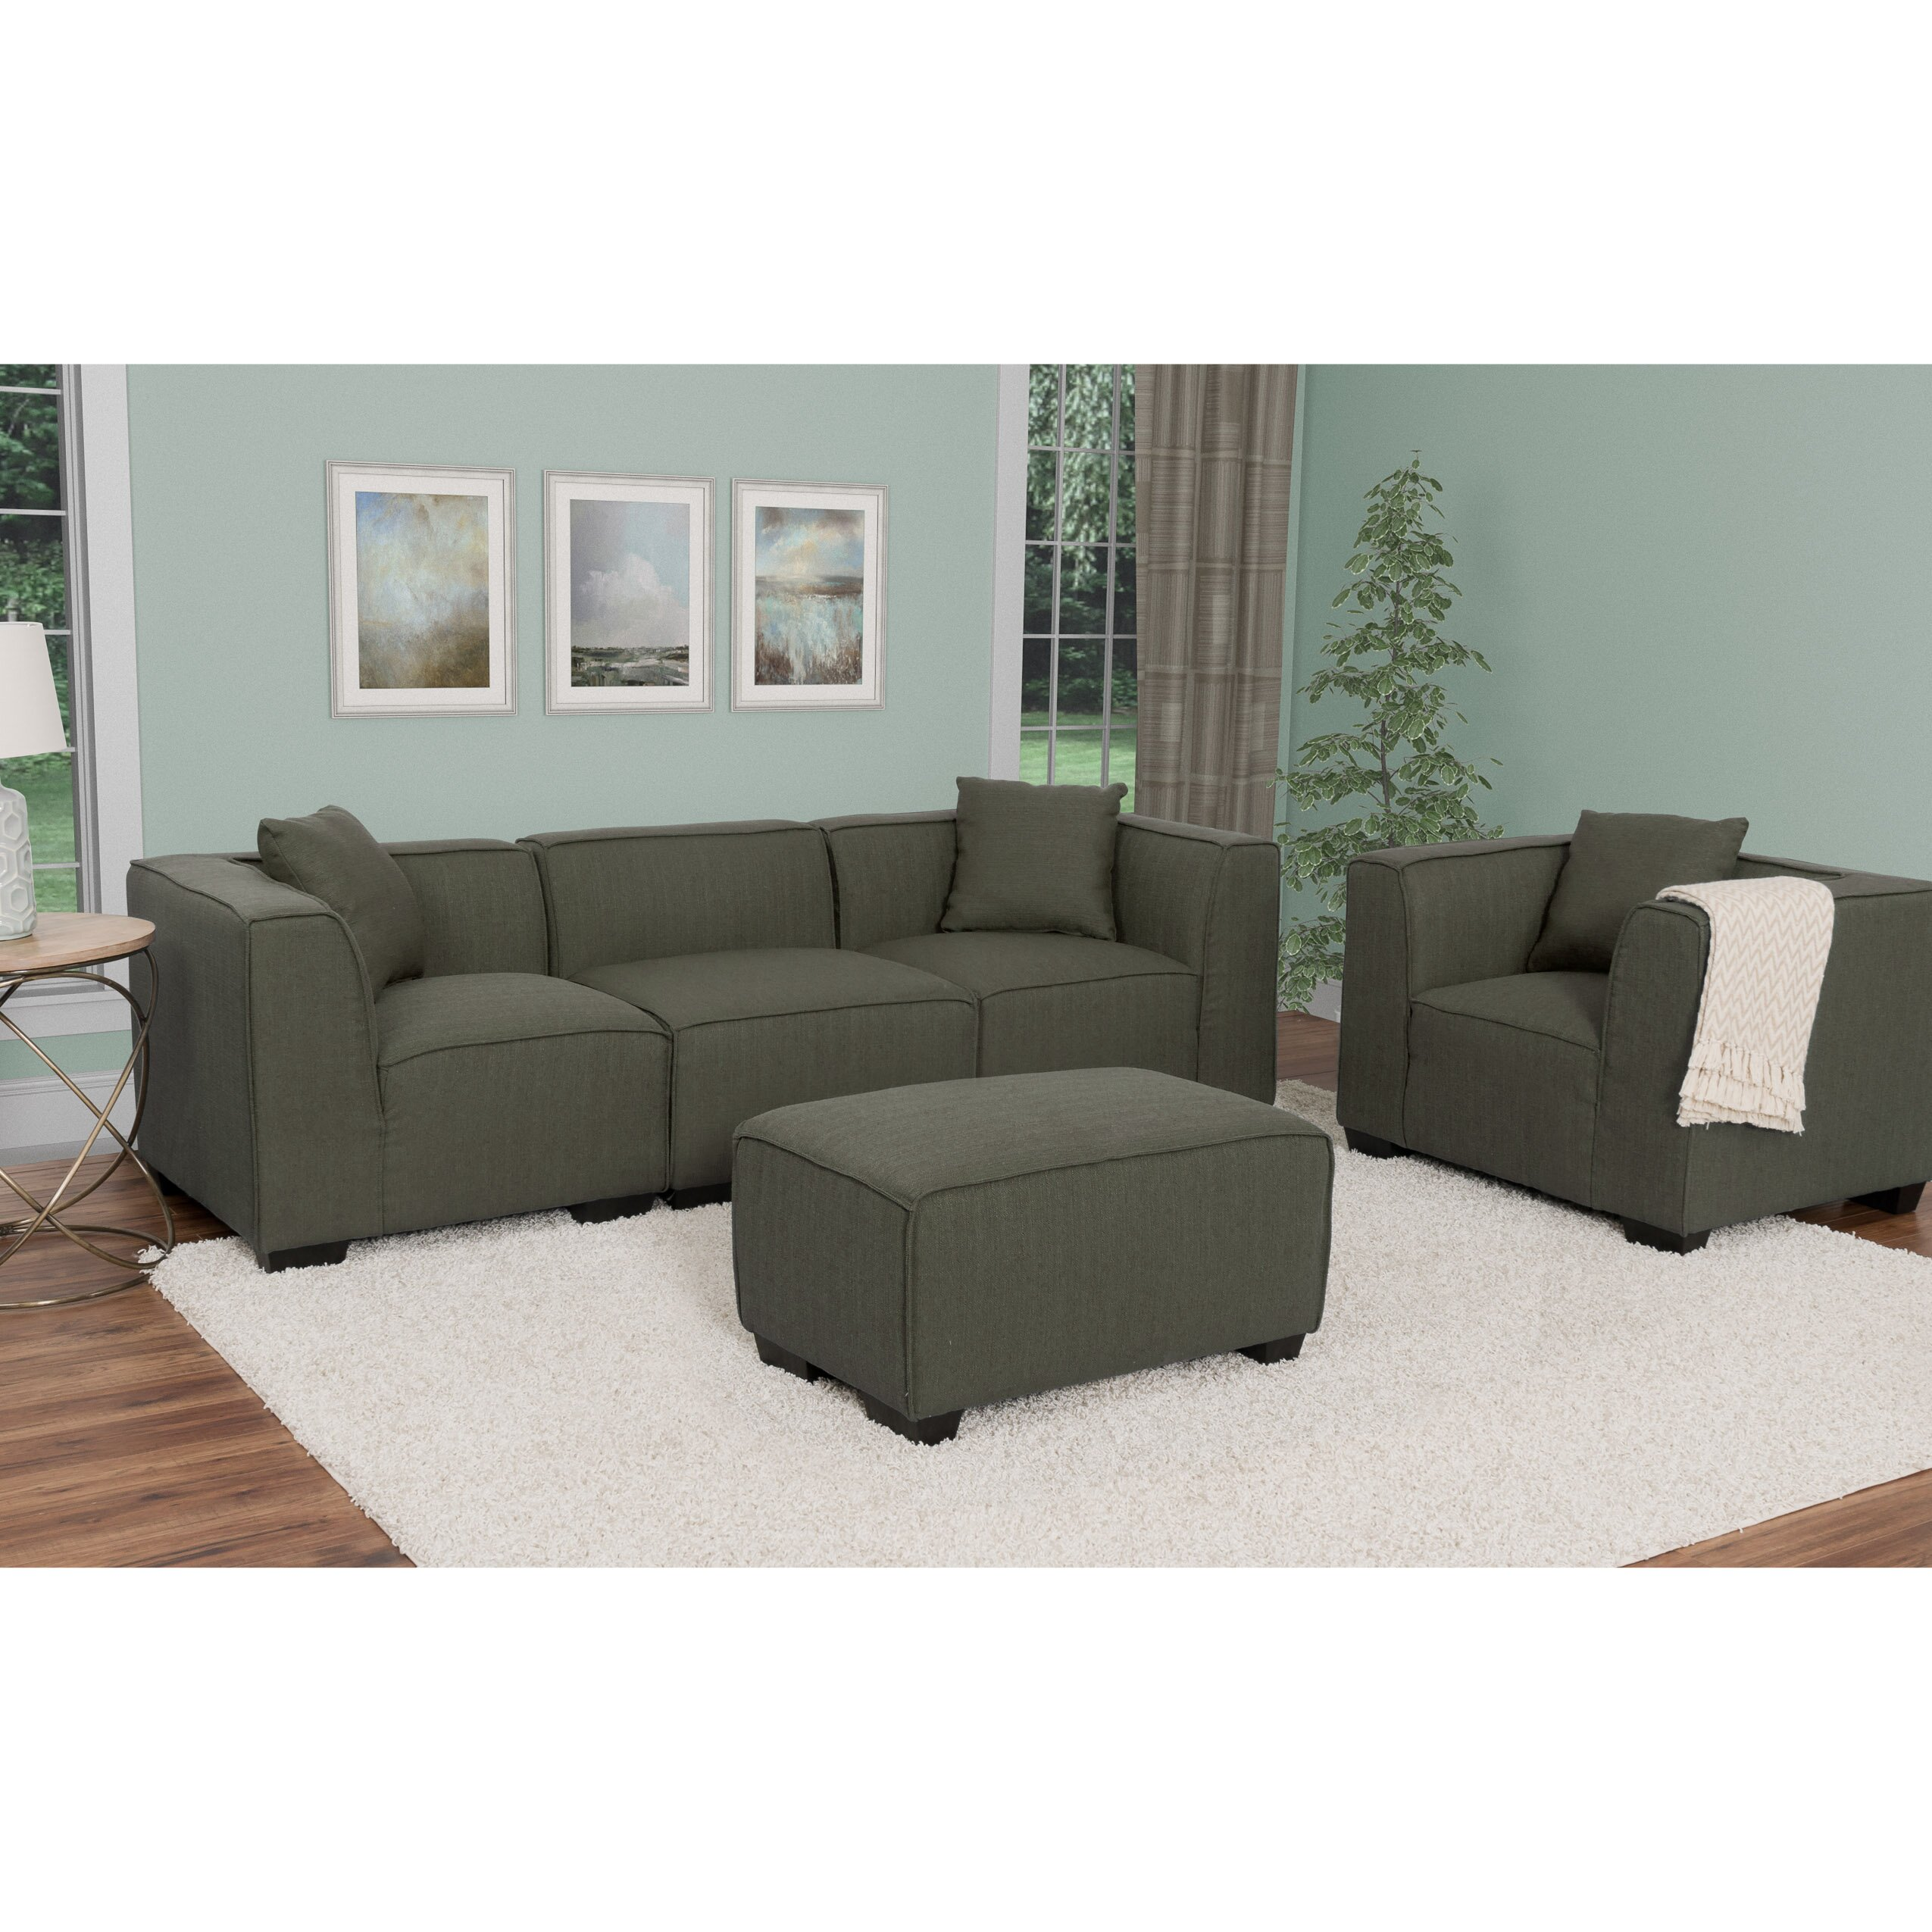 Latitude Run Randy Modular Sectional